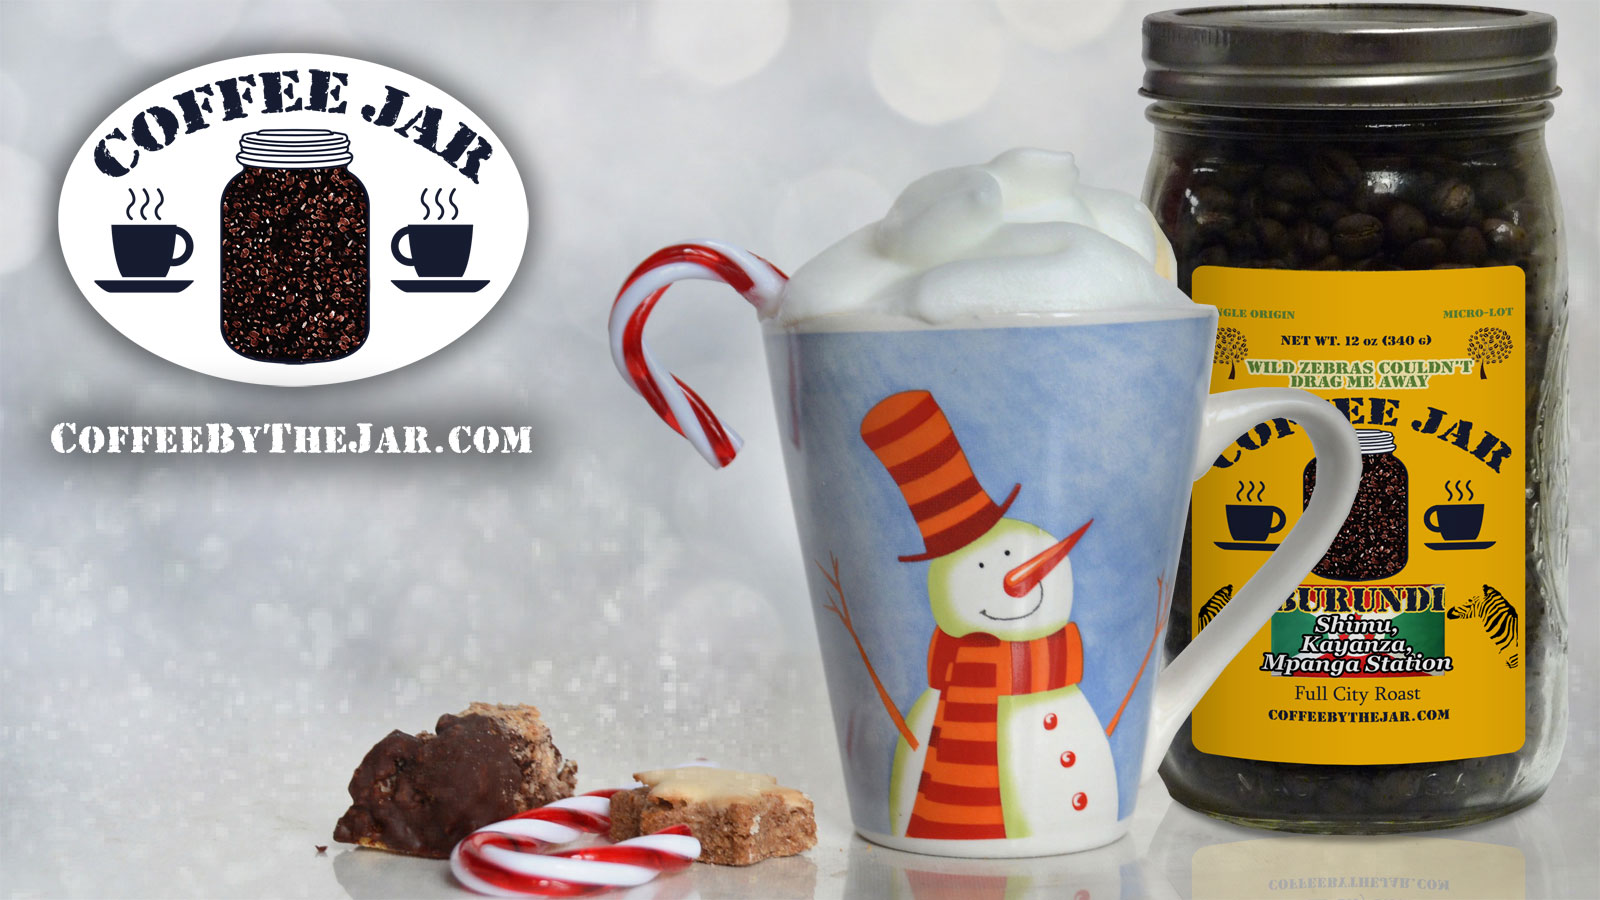 Coffee-Jar-New-Year-wallpaper01-1600x900